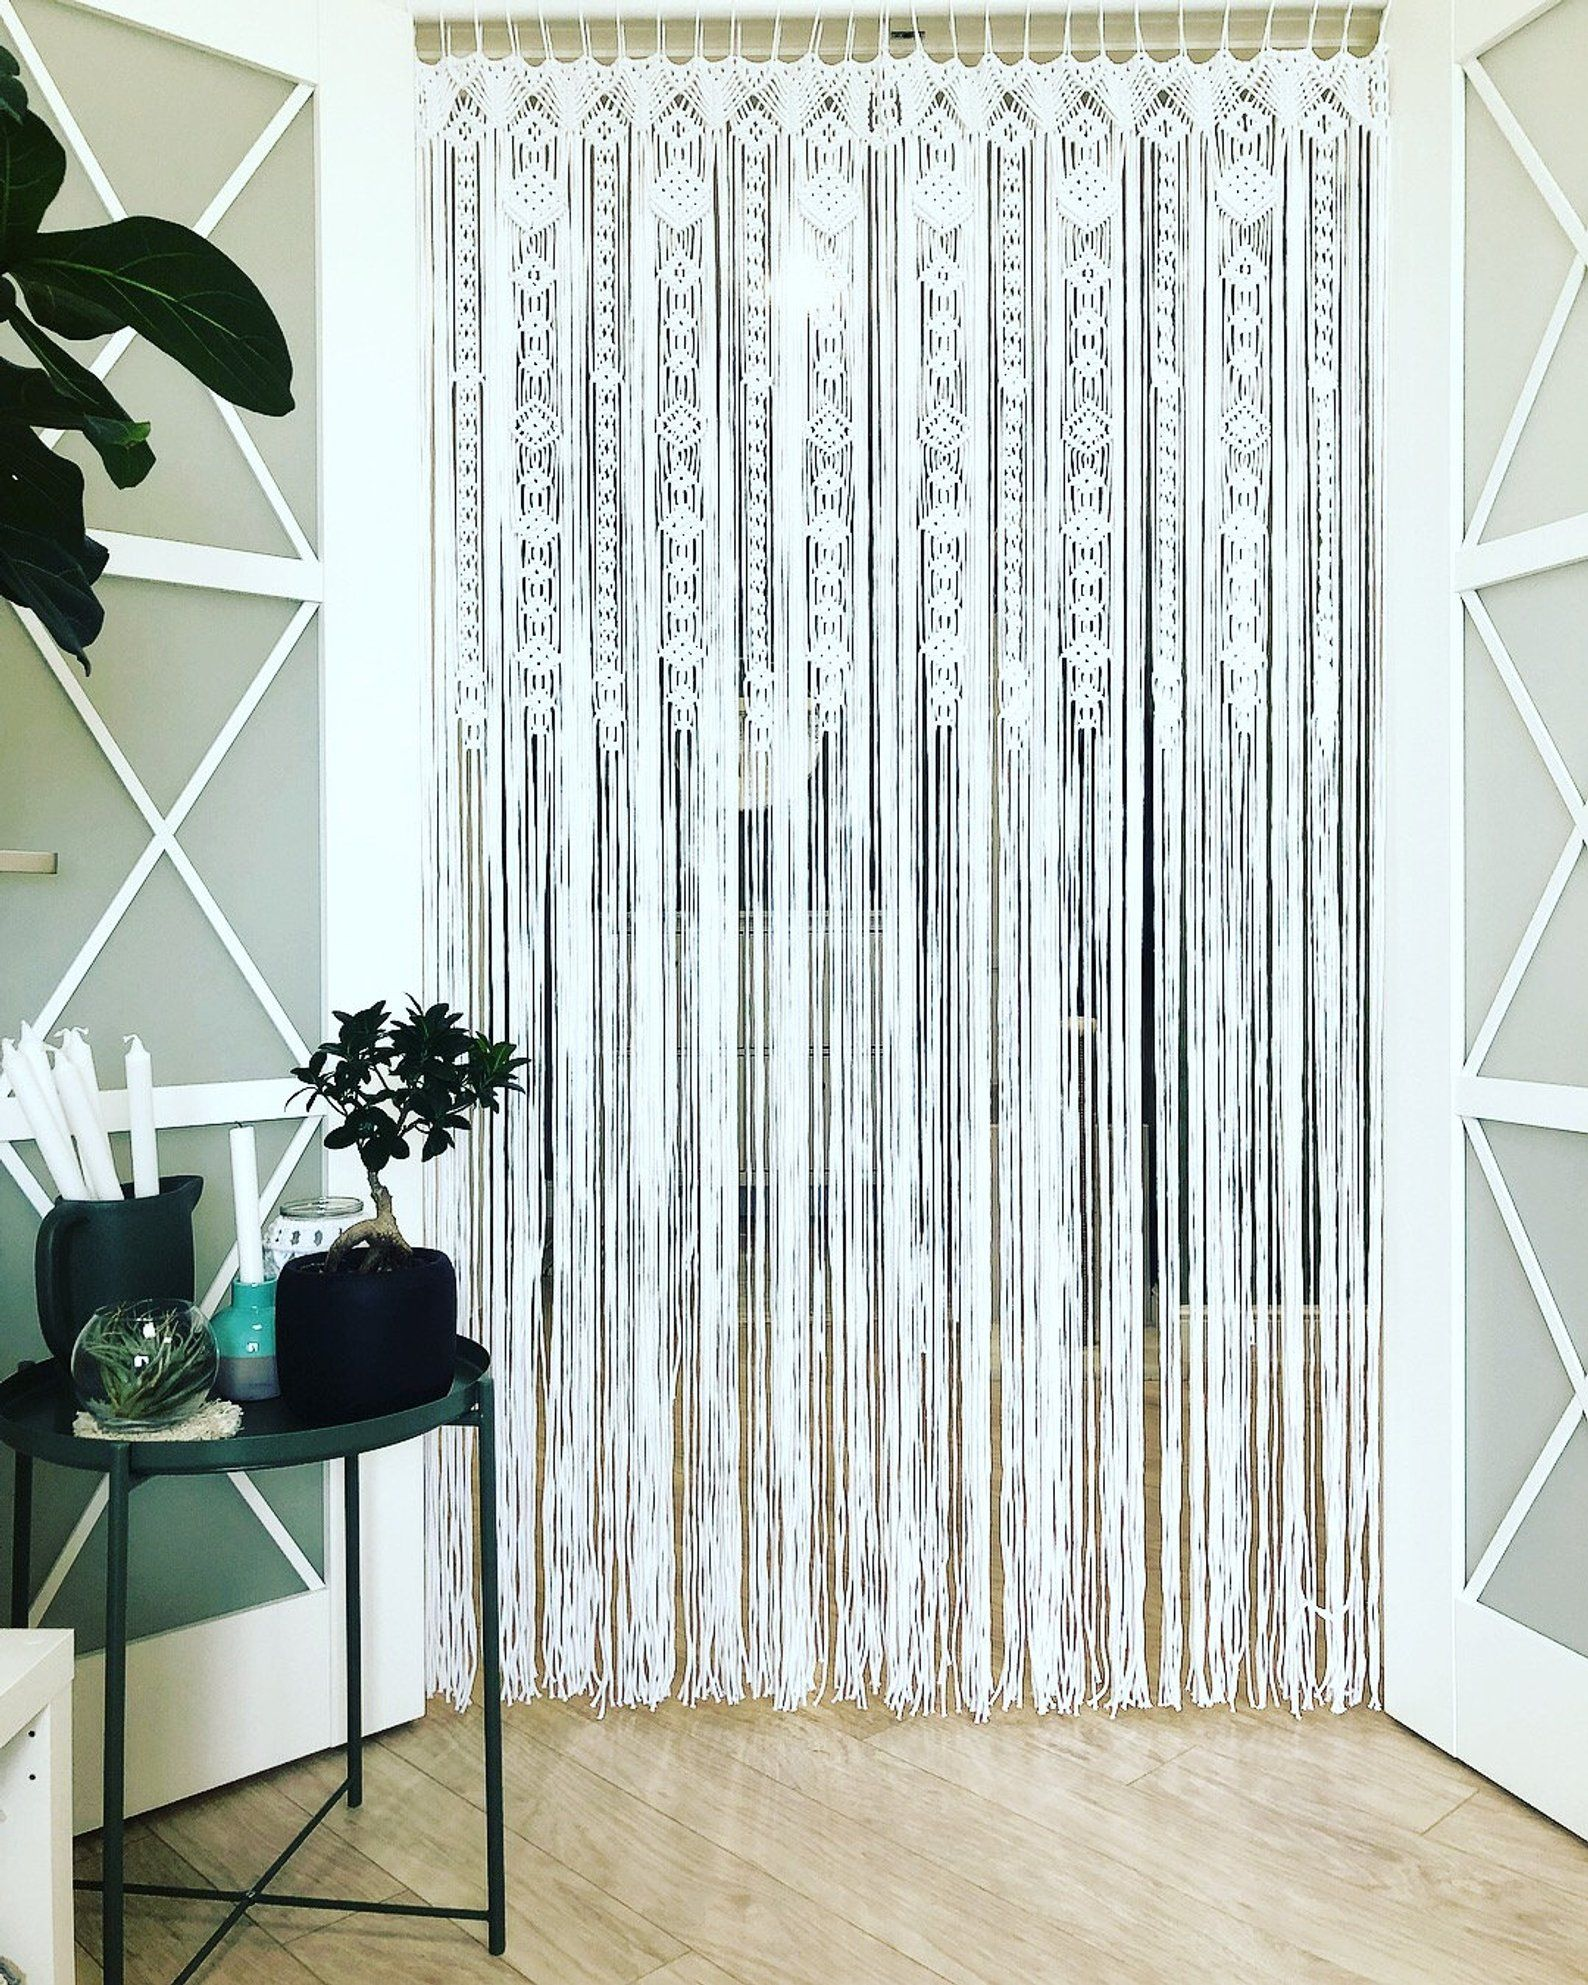 Large Macrame Door Curtains Of 2 Or 1 Panels Macrame Window Etsy Macrame Door Curtain Door Curtains Wall Decor Bedroom